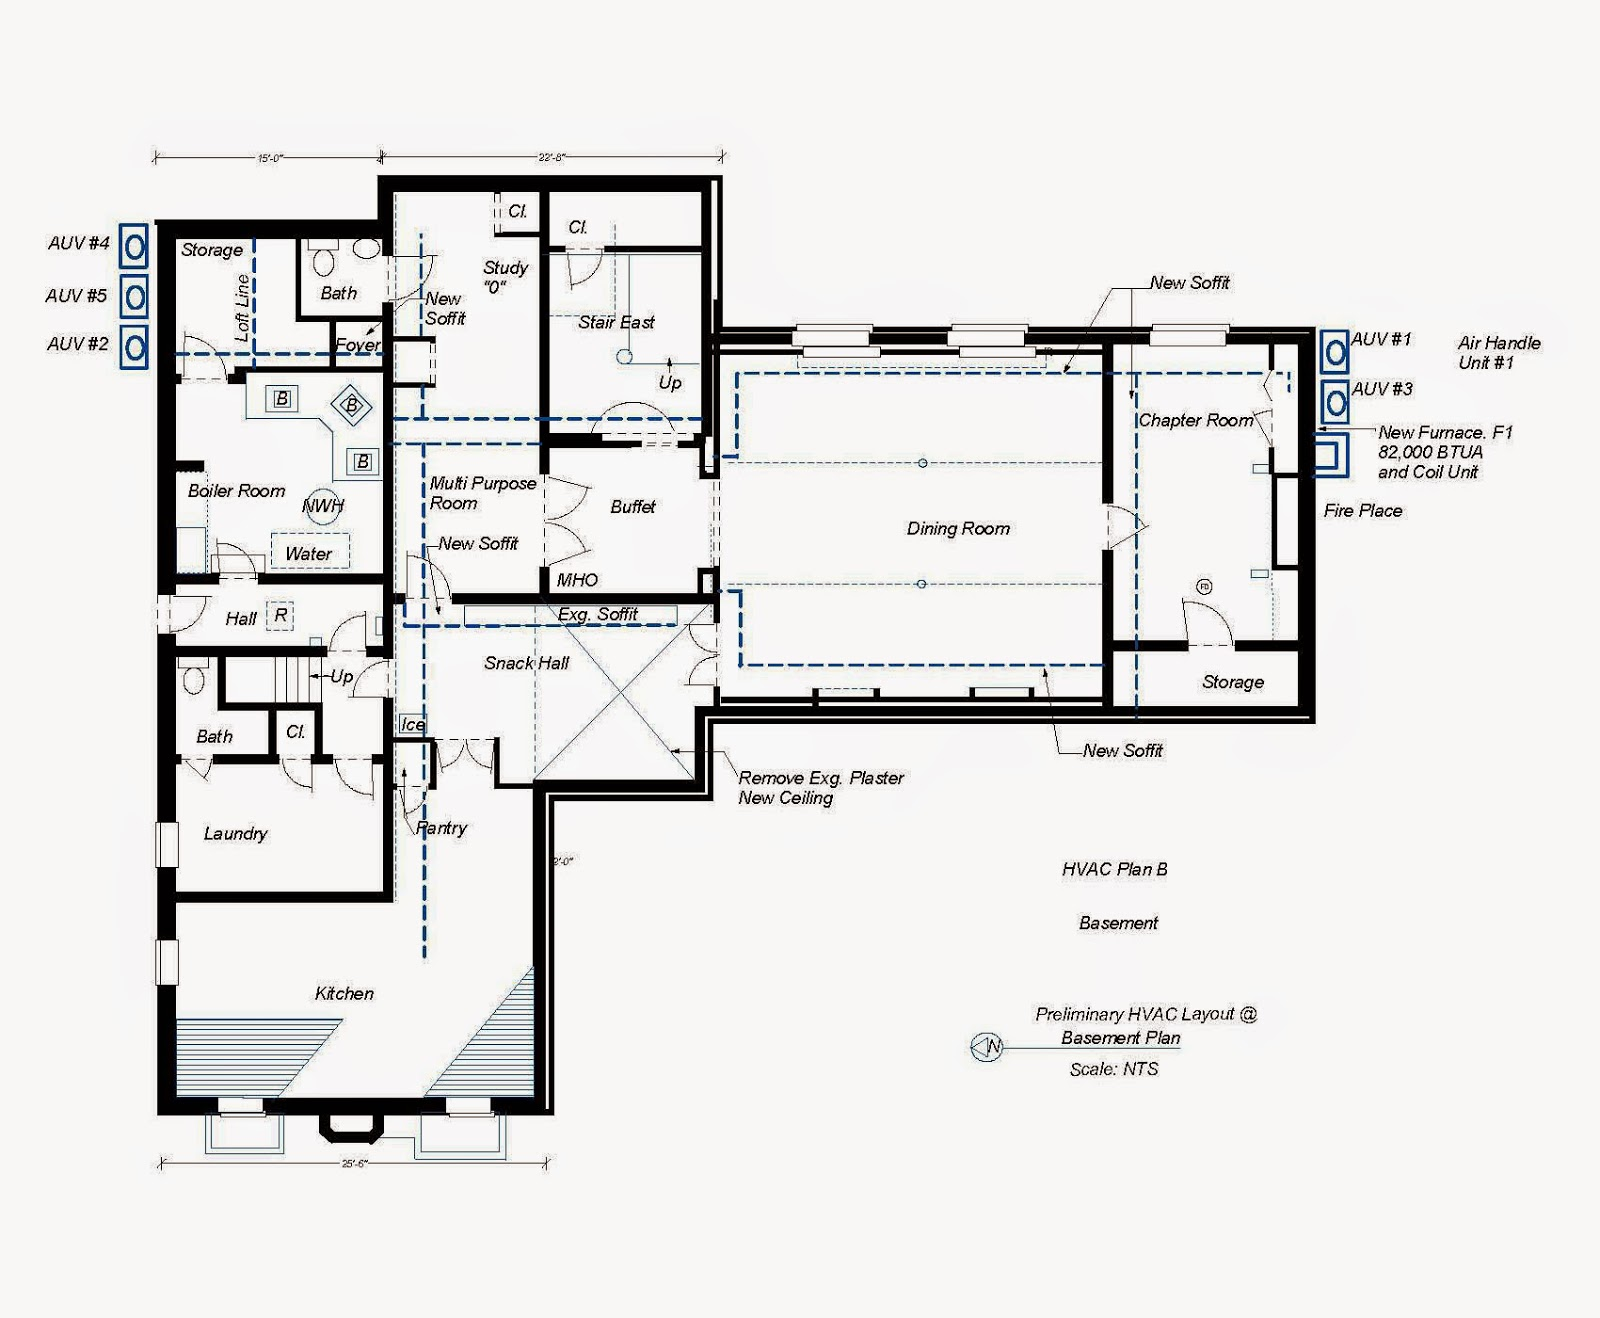 Electric Work Home Electrical Wiring Blueprint And Layout